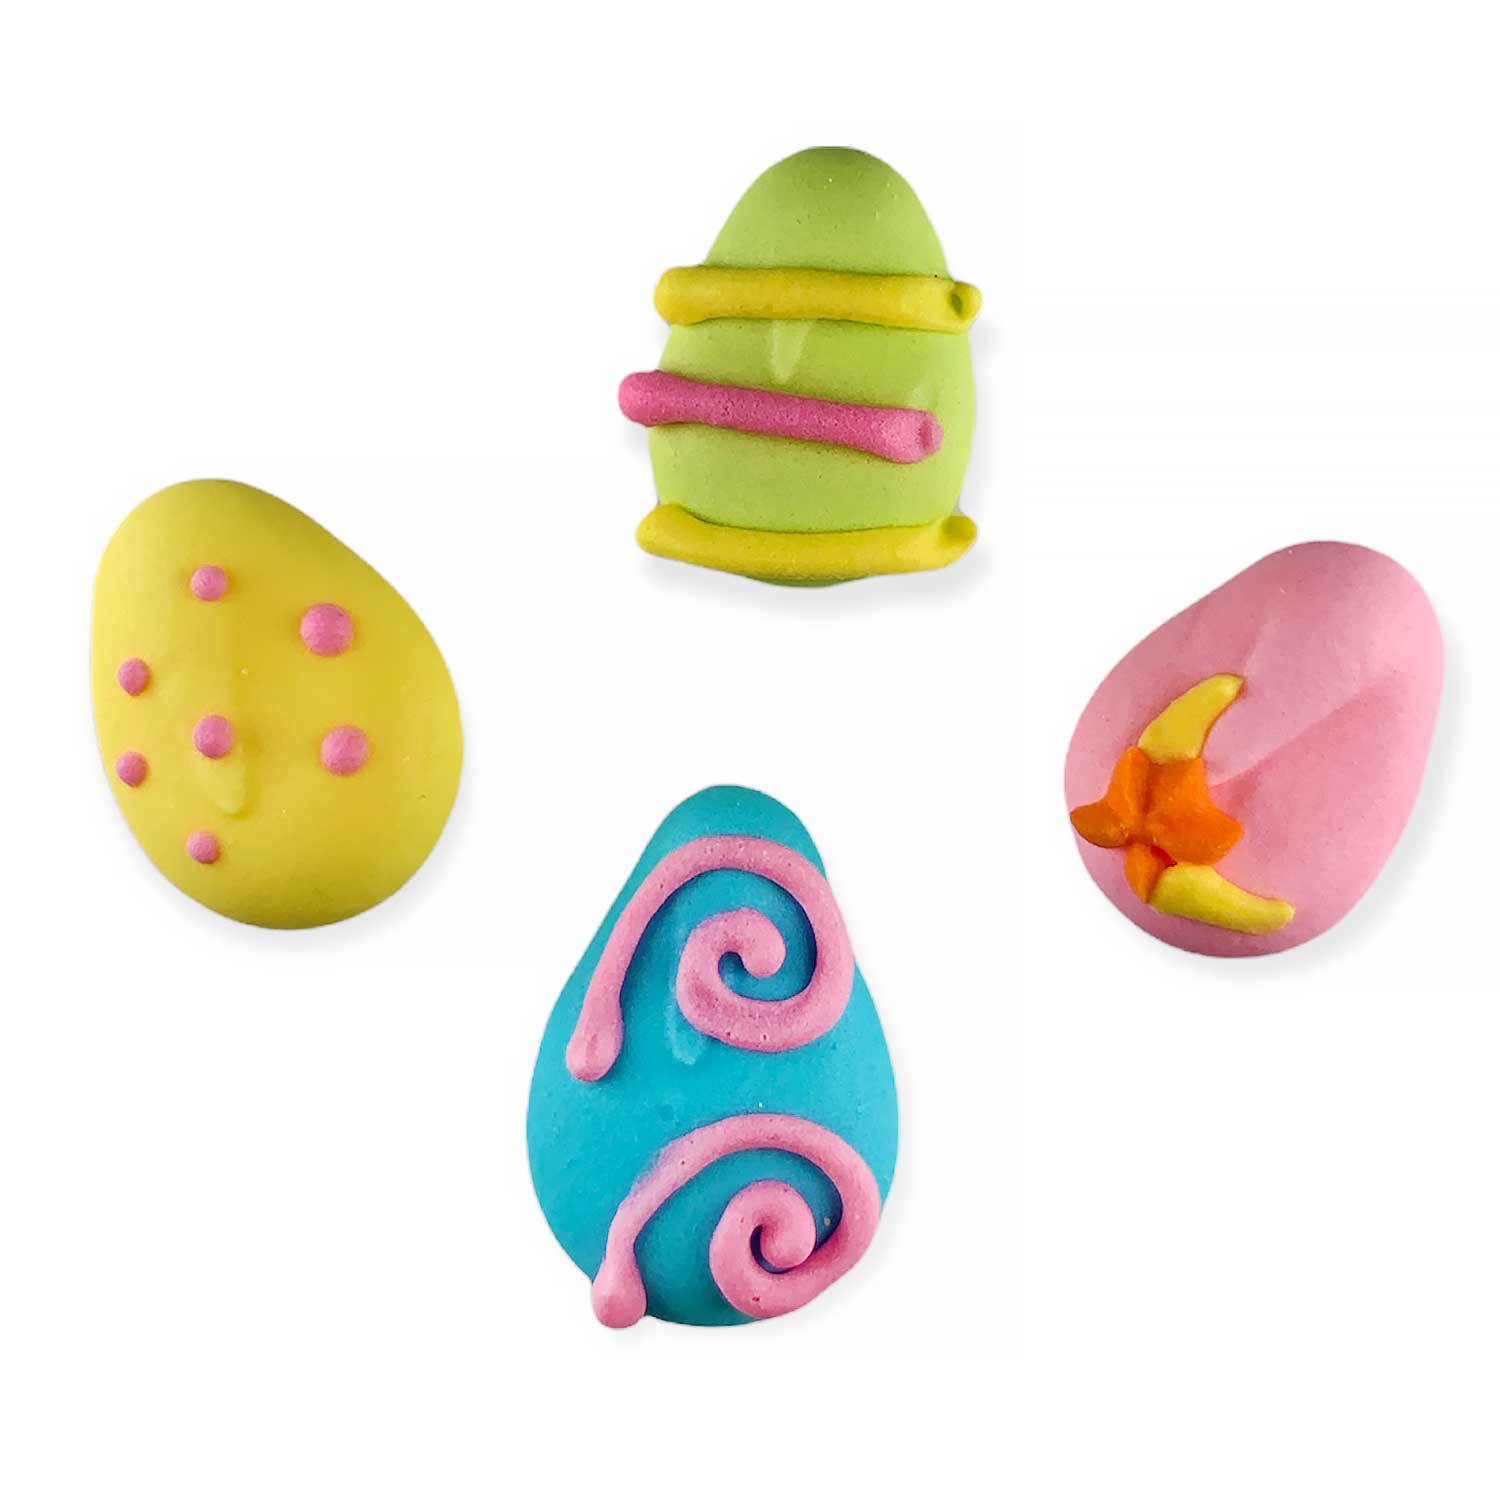 Icing Layons - Tiny Stylized Easter Eggs